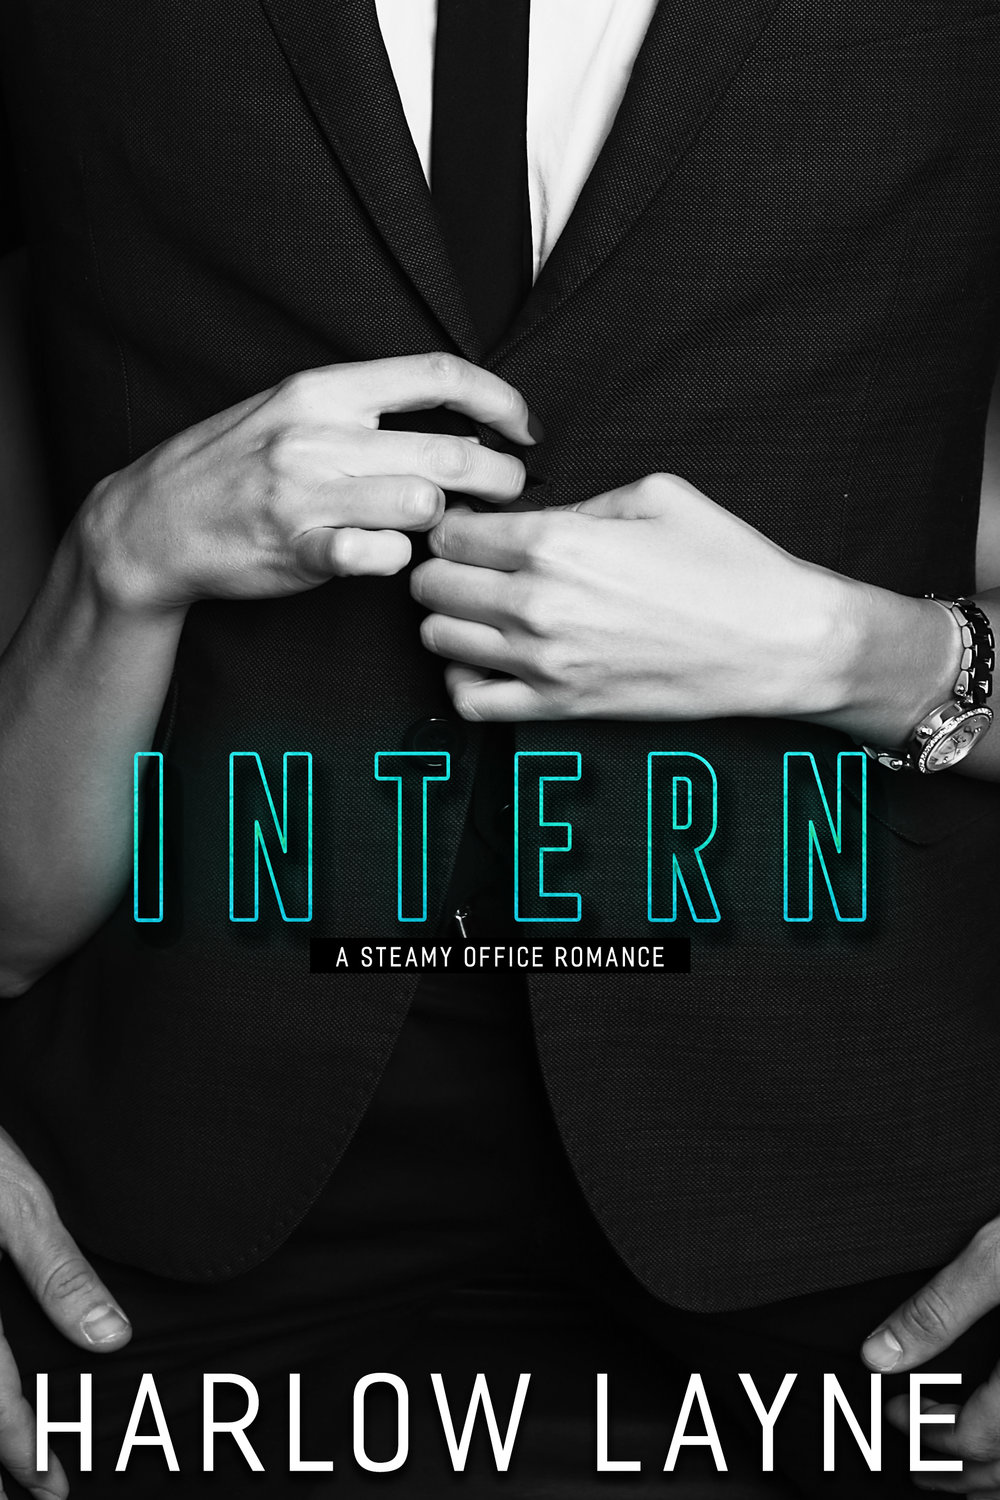 - You should never mix business with pleasure… right?Whoops...Meet my brand-new intern, who also happens to be the man at my doorstep for one night of passion. He's drop-dead gorgeous, with bedroom eyes and a body made for sin. I want him, but do I want him bad enough to risk everything, my job included?Thus, will sparks continue to fly between us in and out of the office, or was it all but one night of passion?